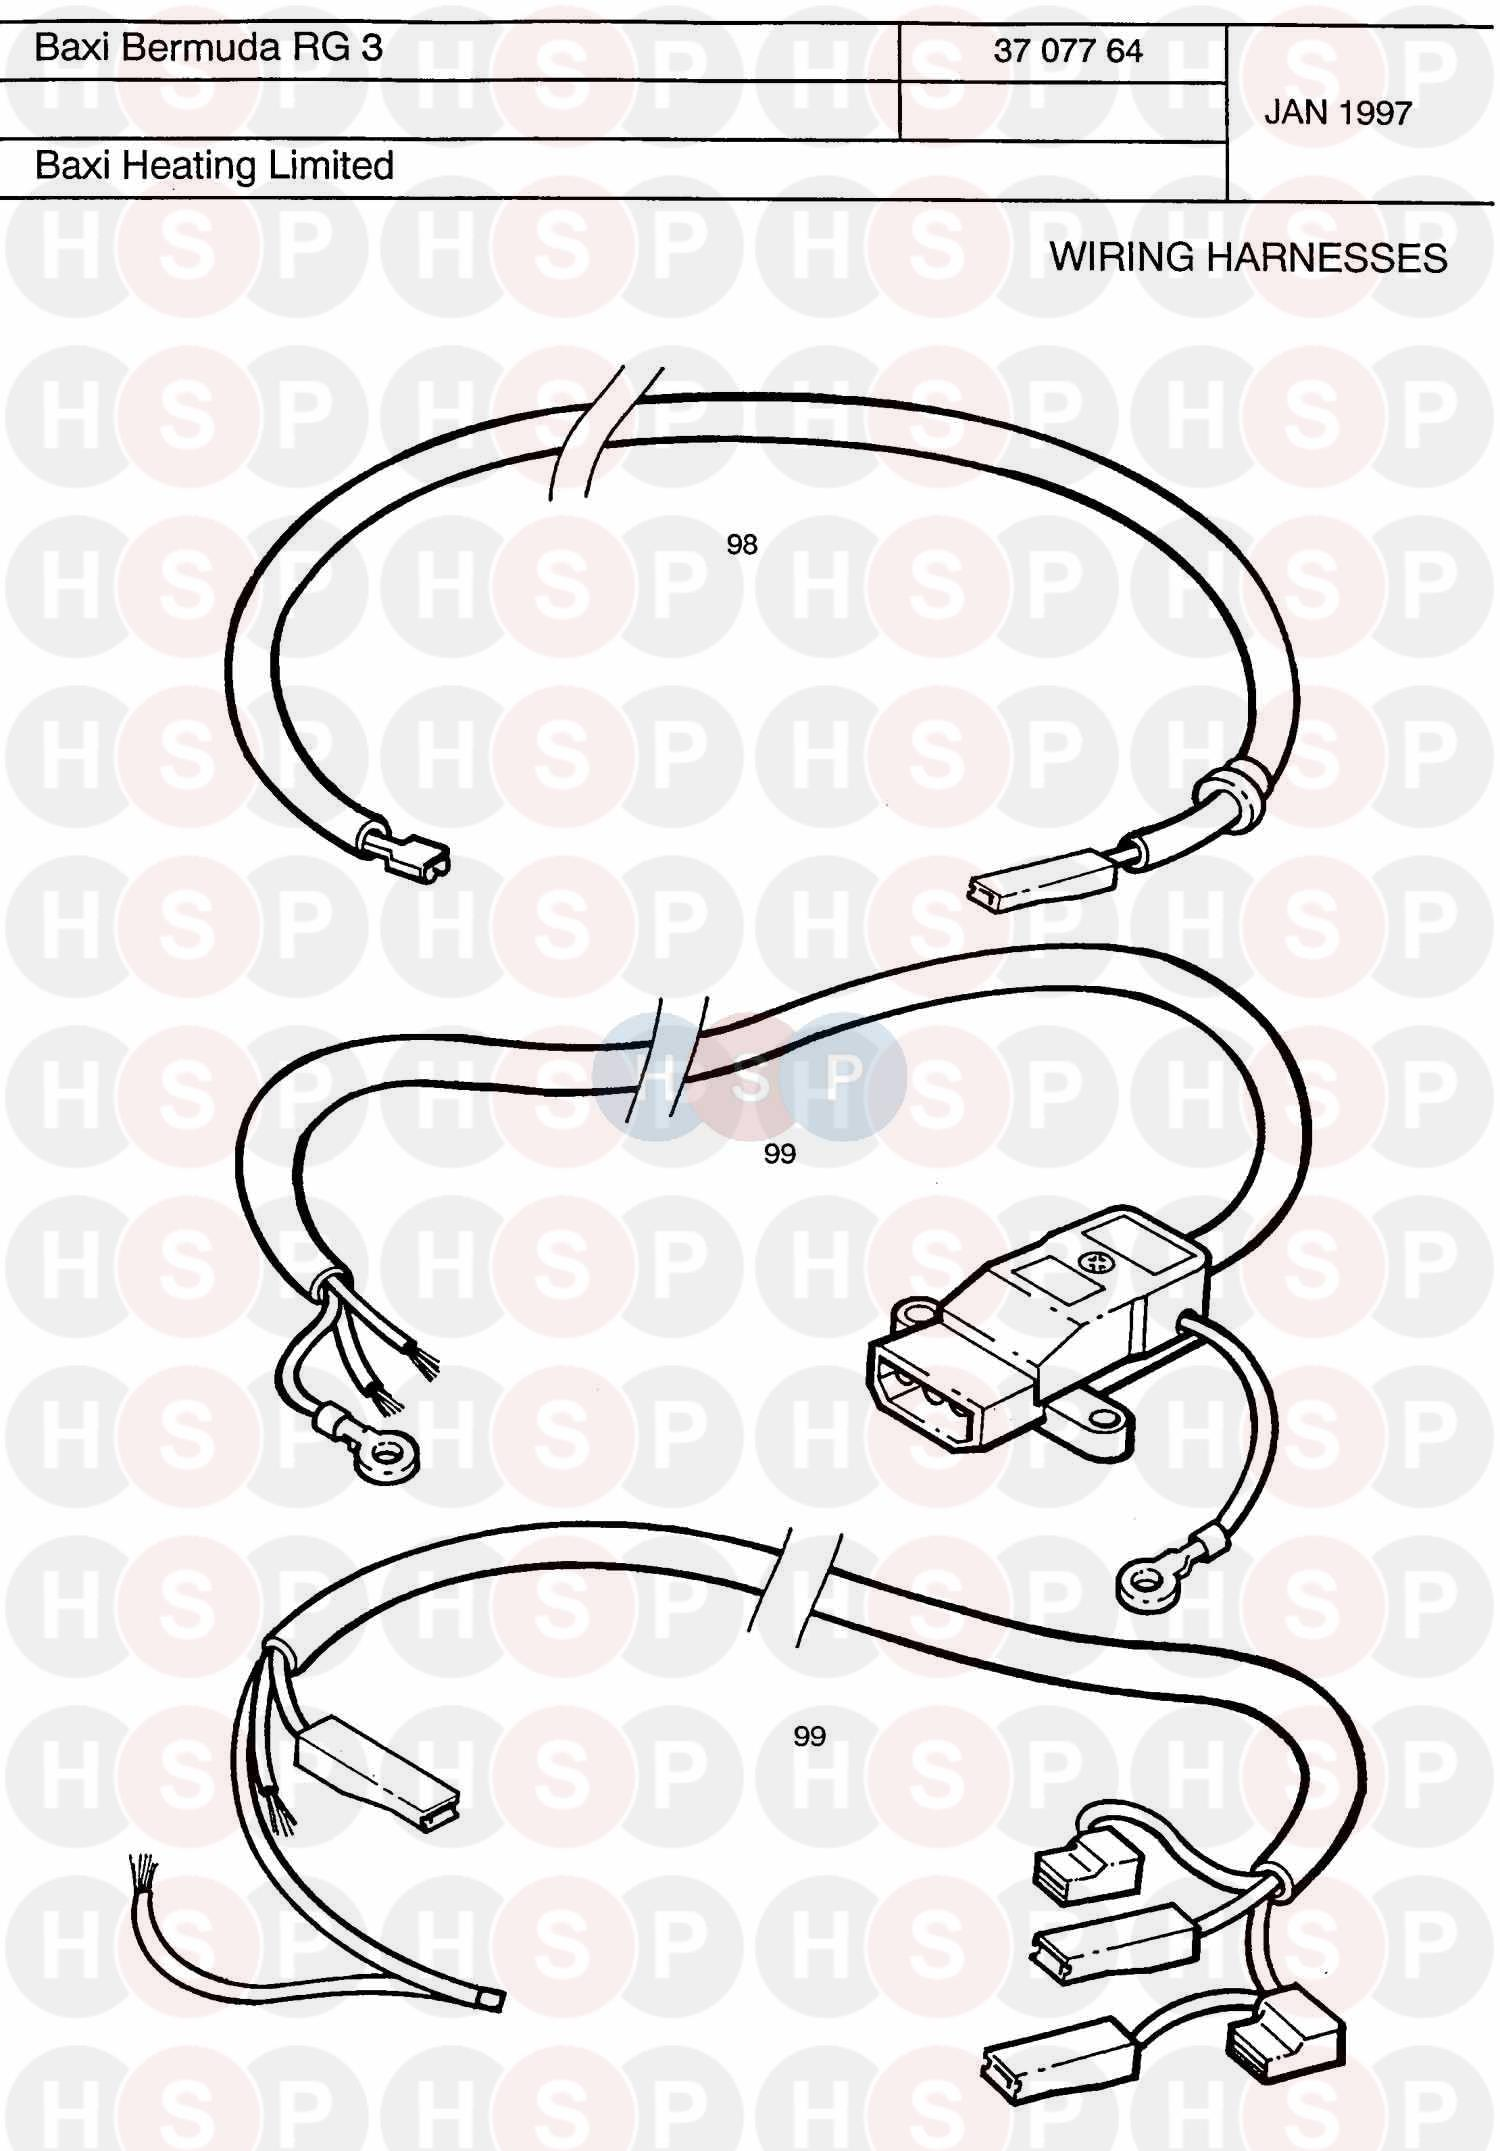 Wiring Harness diagram for Baxi BERMUDA RG3 RENEWAL NG